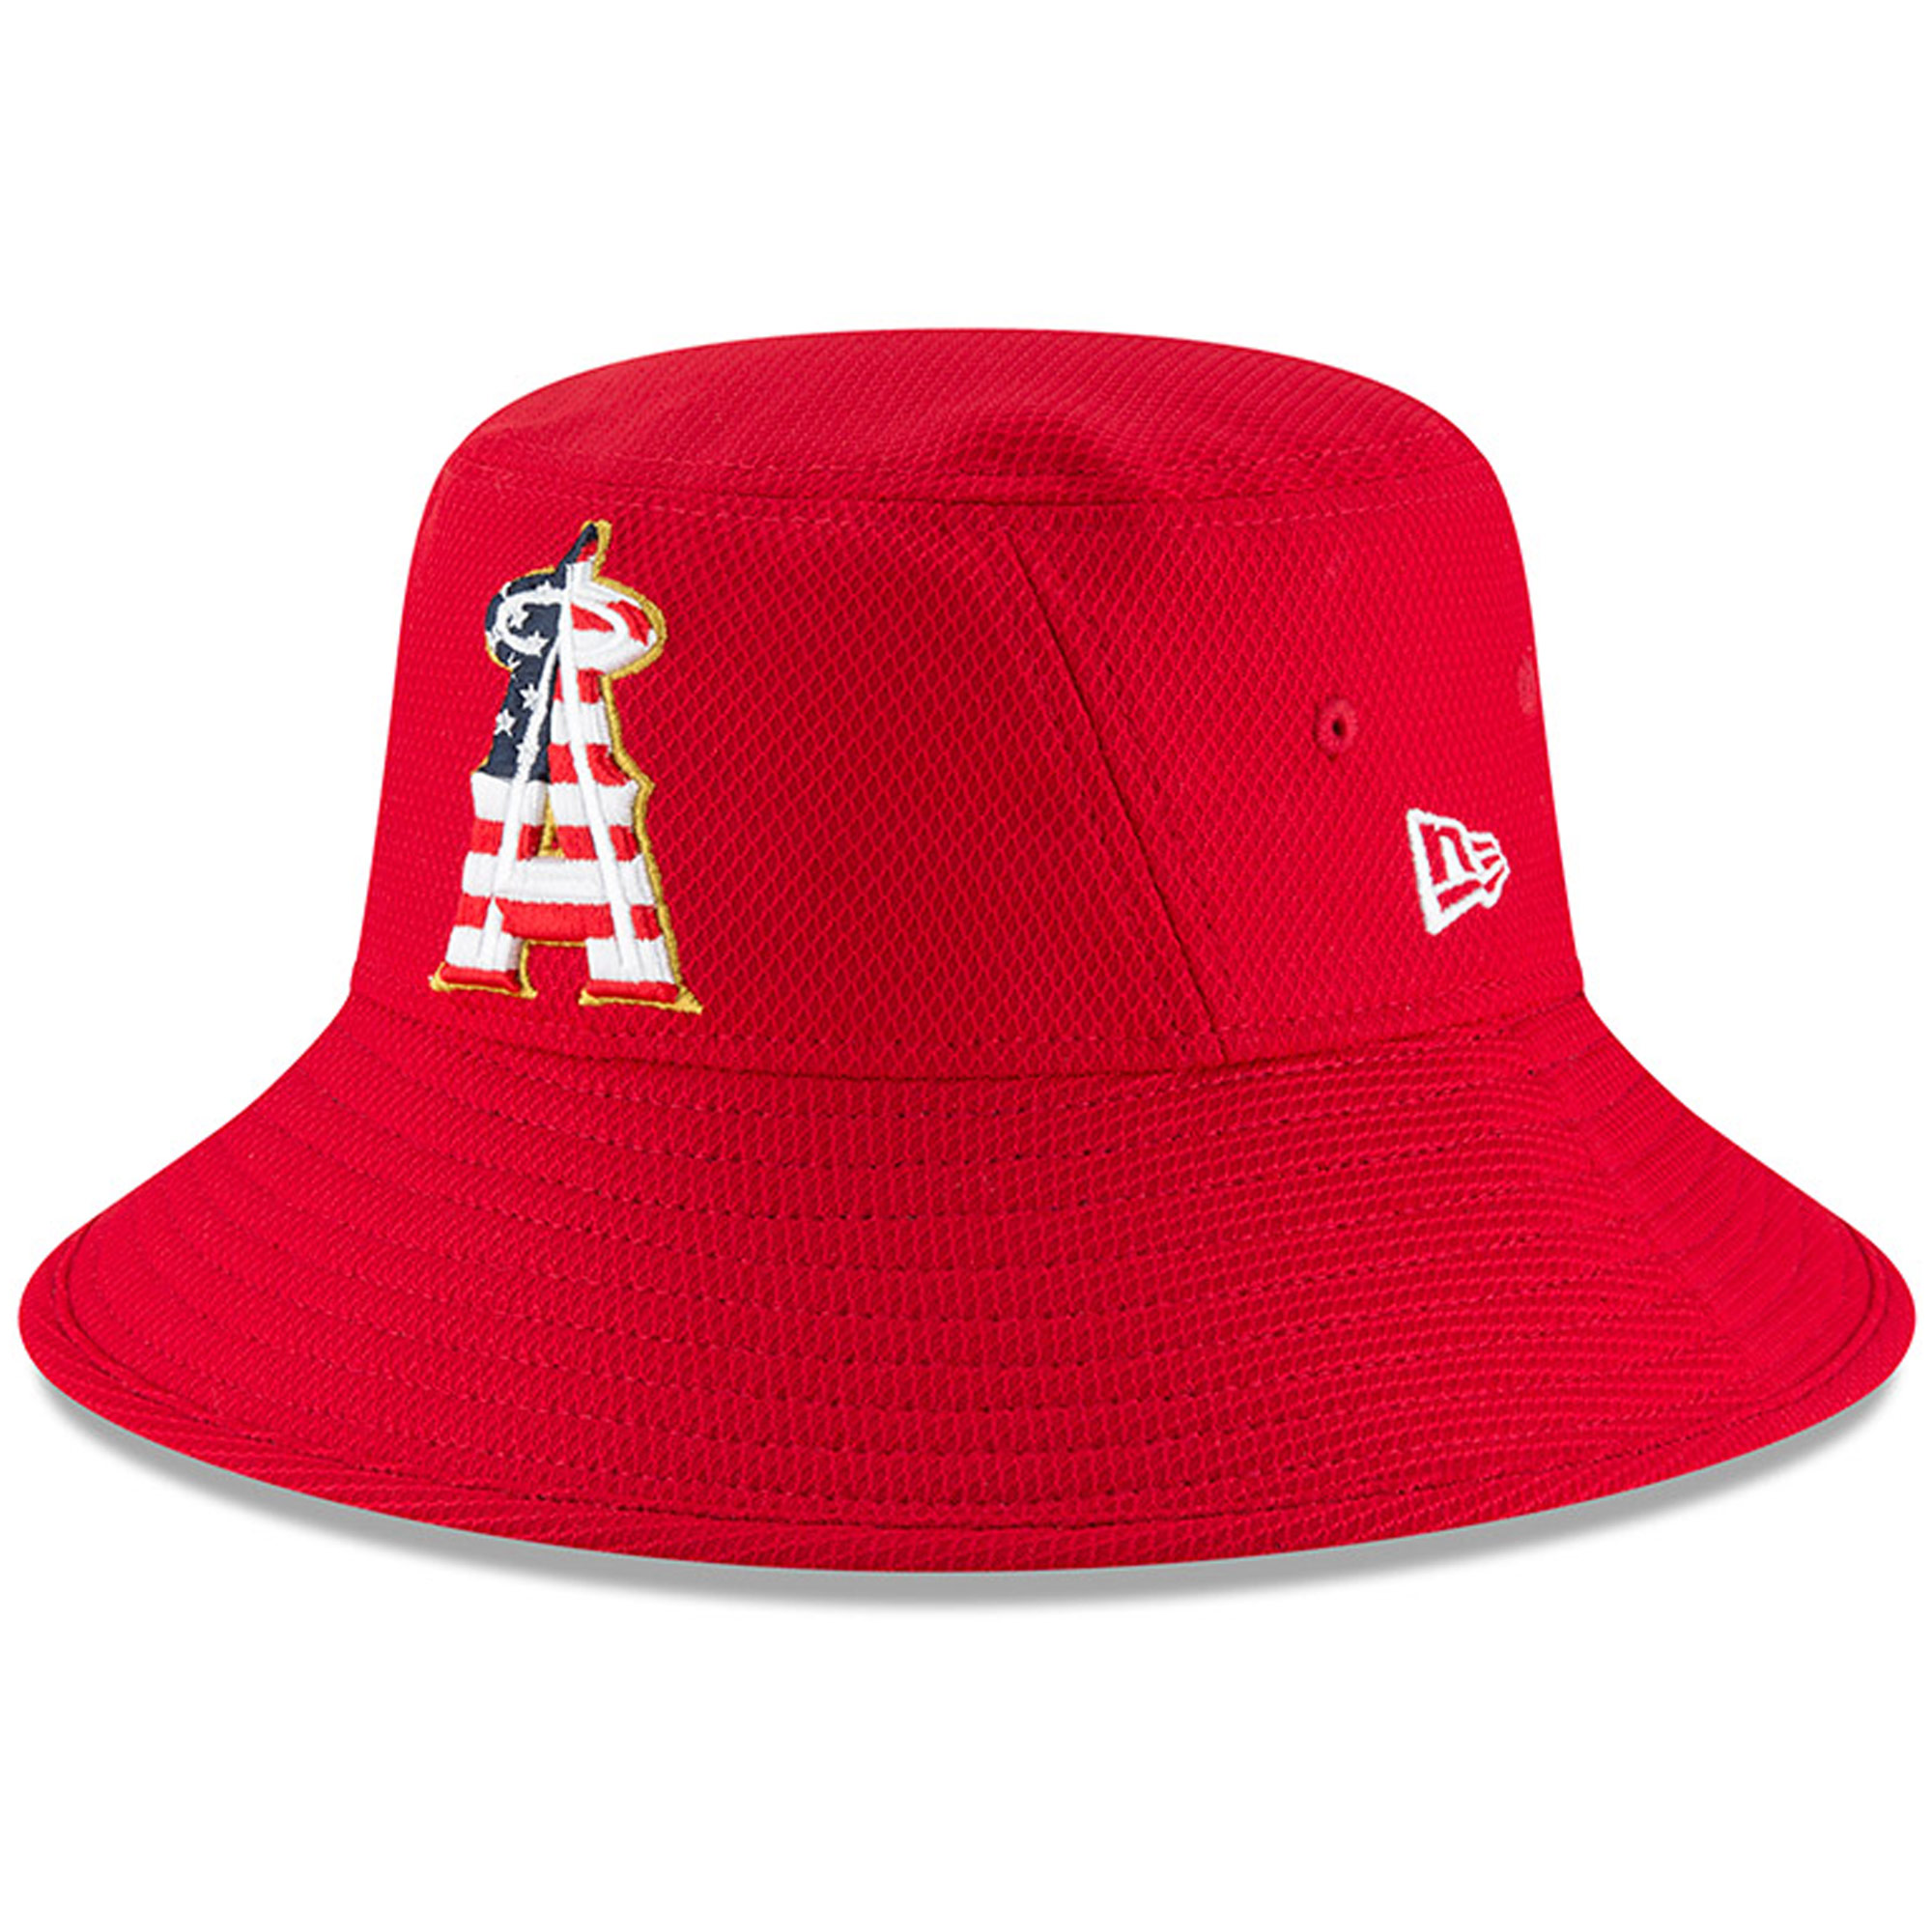 Los Angeles Angels New Era 2018 Stars   Stripes 4th of July Bucket Hat -  Red - OSFA - Walmart.com 59e93107495